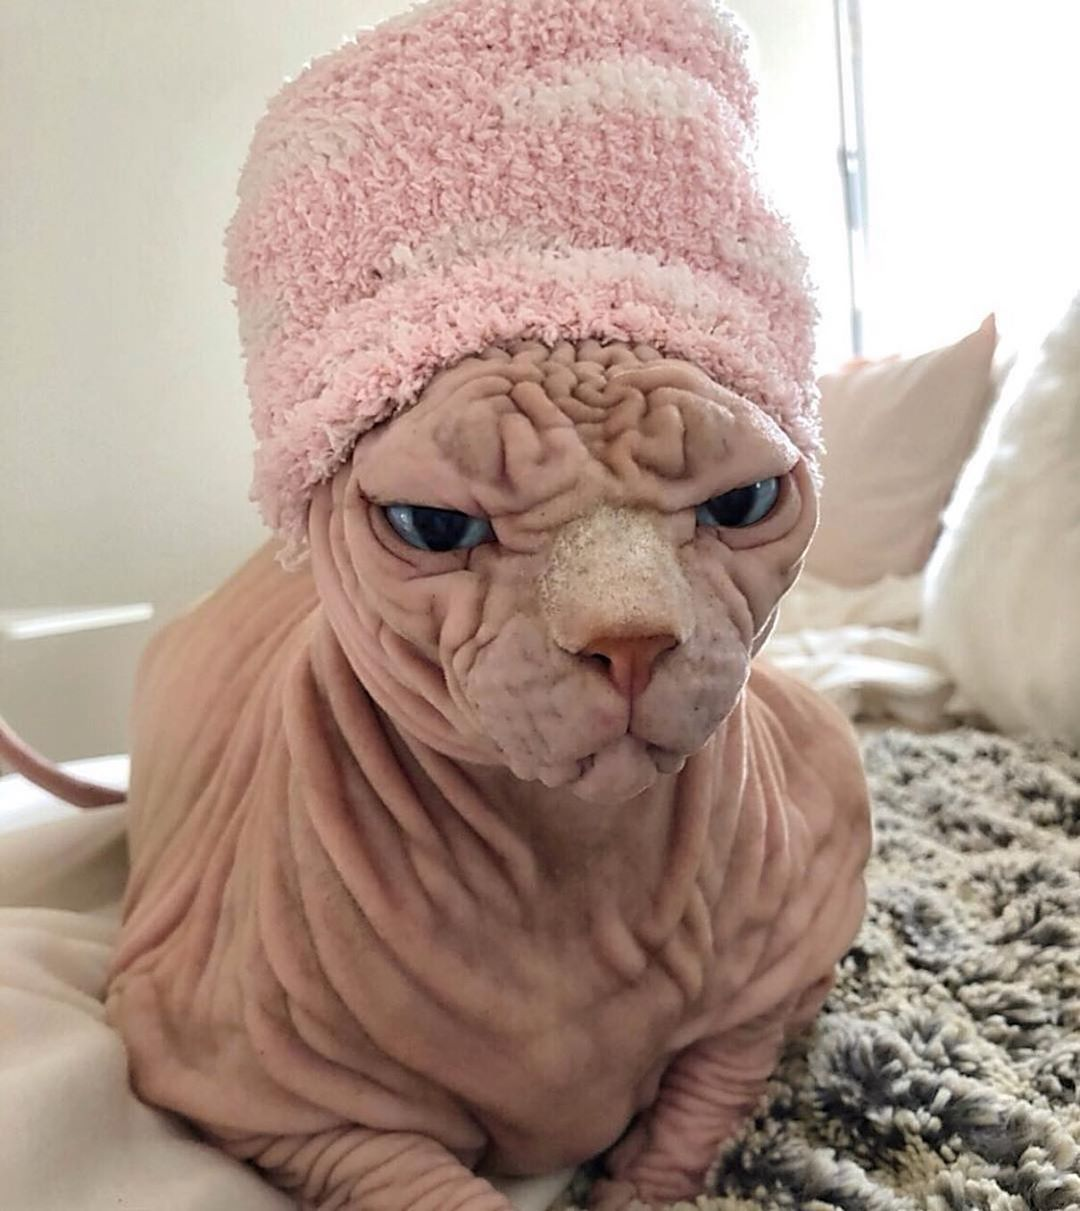 Pin By Toni Smith On 1sphynx Cute Cat Wallpaper Sphynx Cat Cat Care